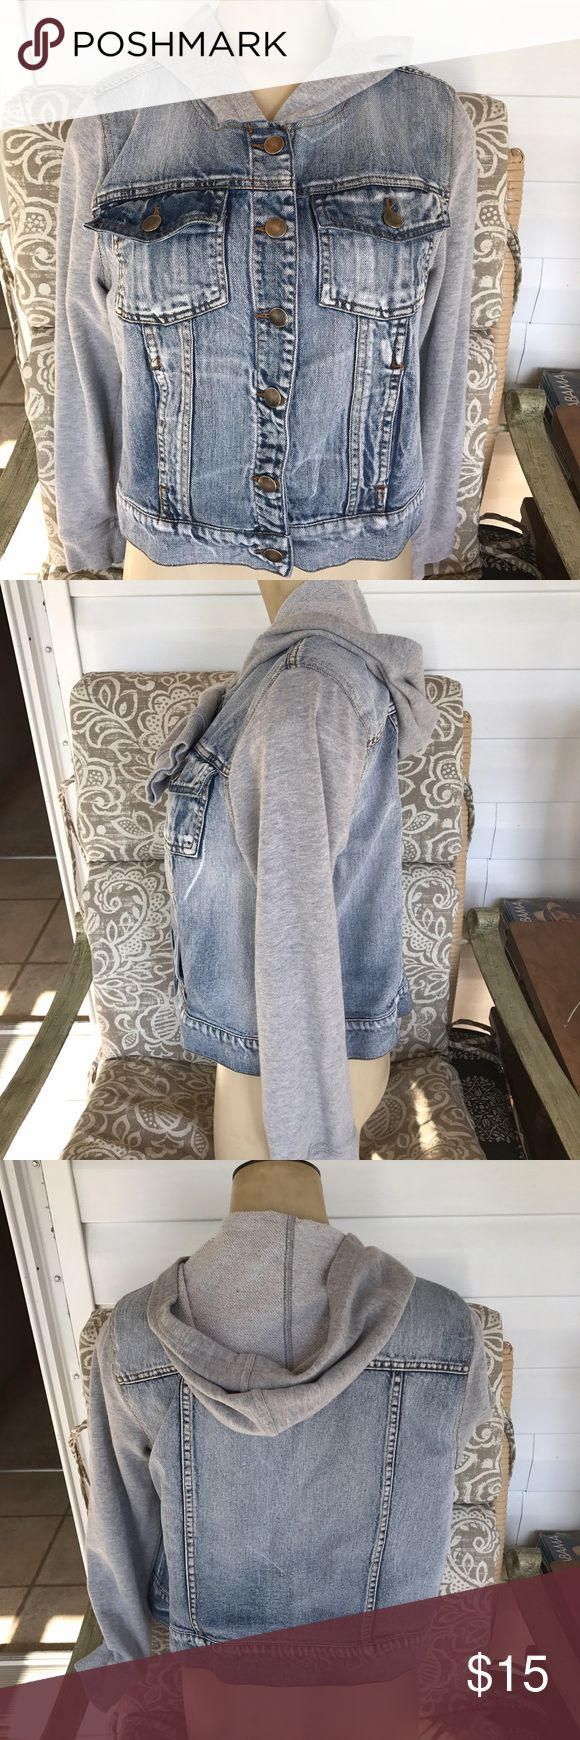 Joe boxer XL denim Jean jacket hoodie light wash Sweatshirt hoodie and sleeves on a denim bodice jacket in size juniors extra-large. Excellent used condition. Armpit to armpit laying flat it measures 19 inches across. Total link down middle of back measures 18.75 inches. Joe boxer Jackets & Coats Jean Jackets